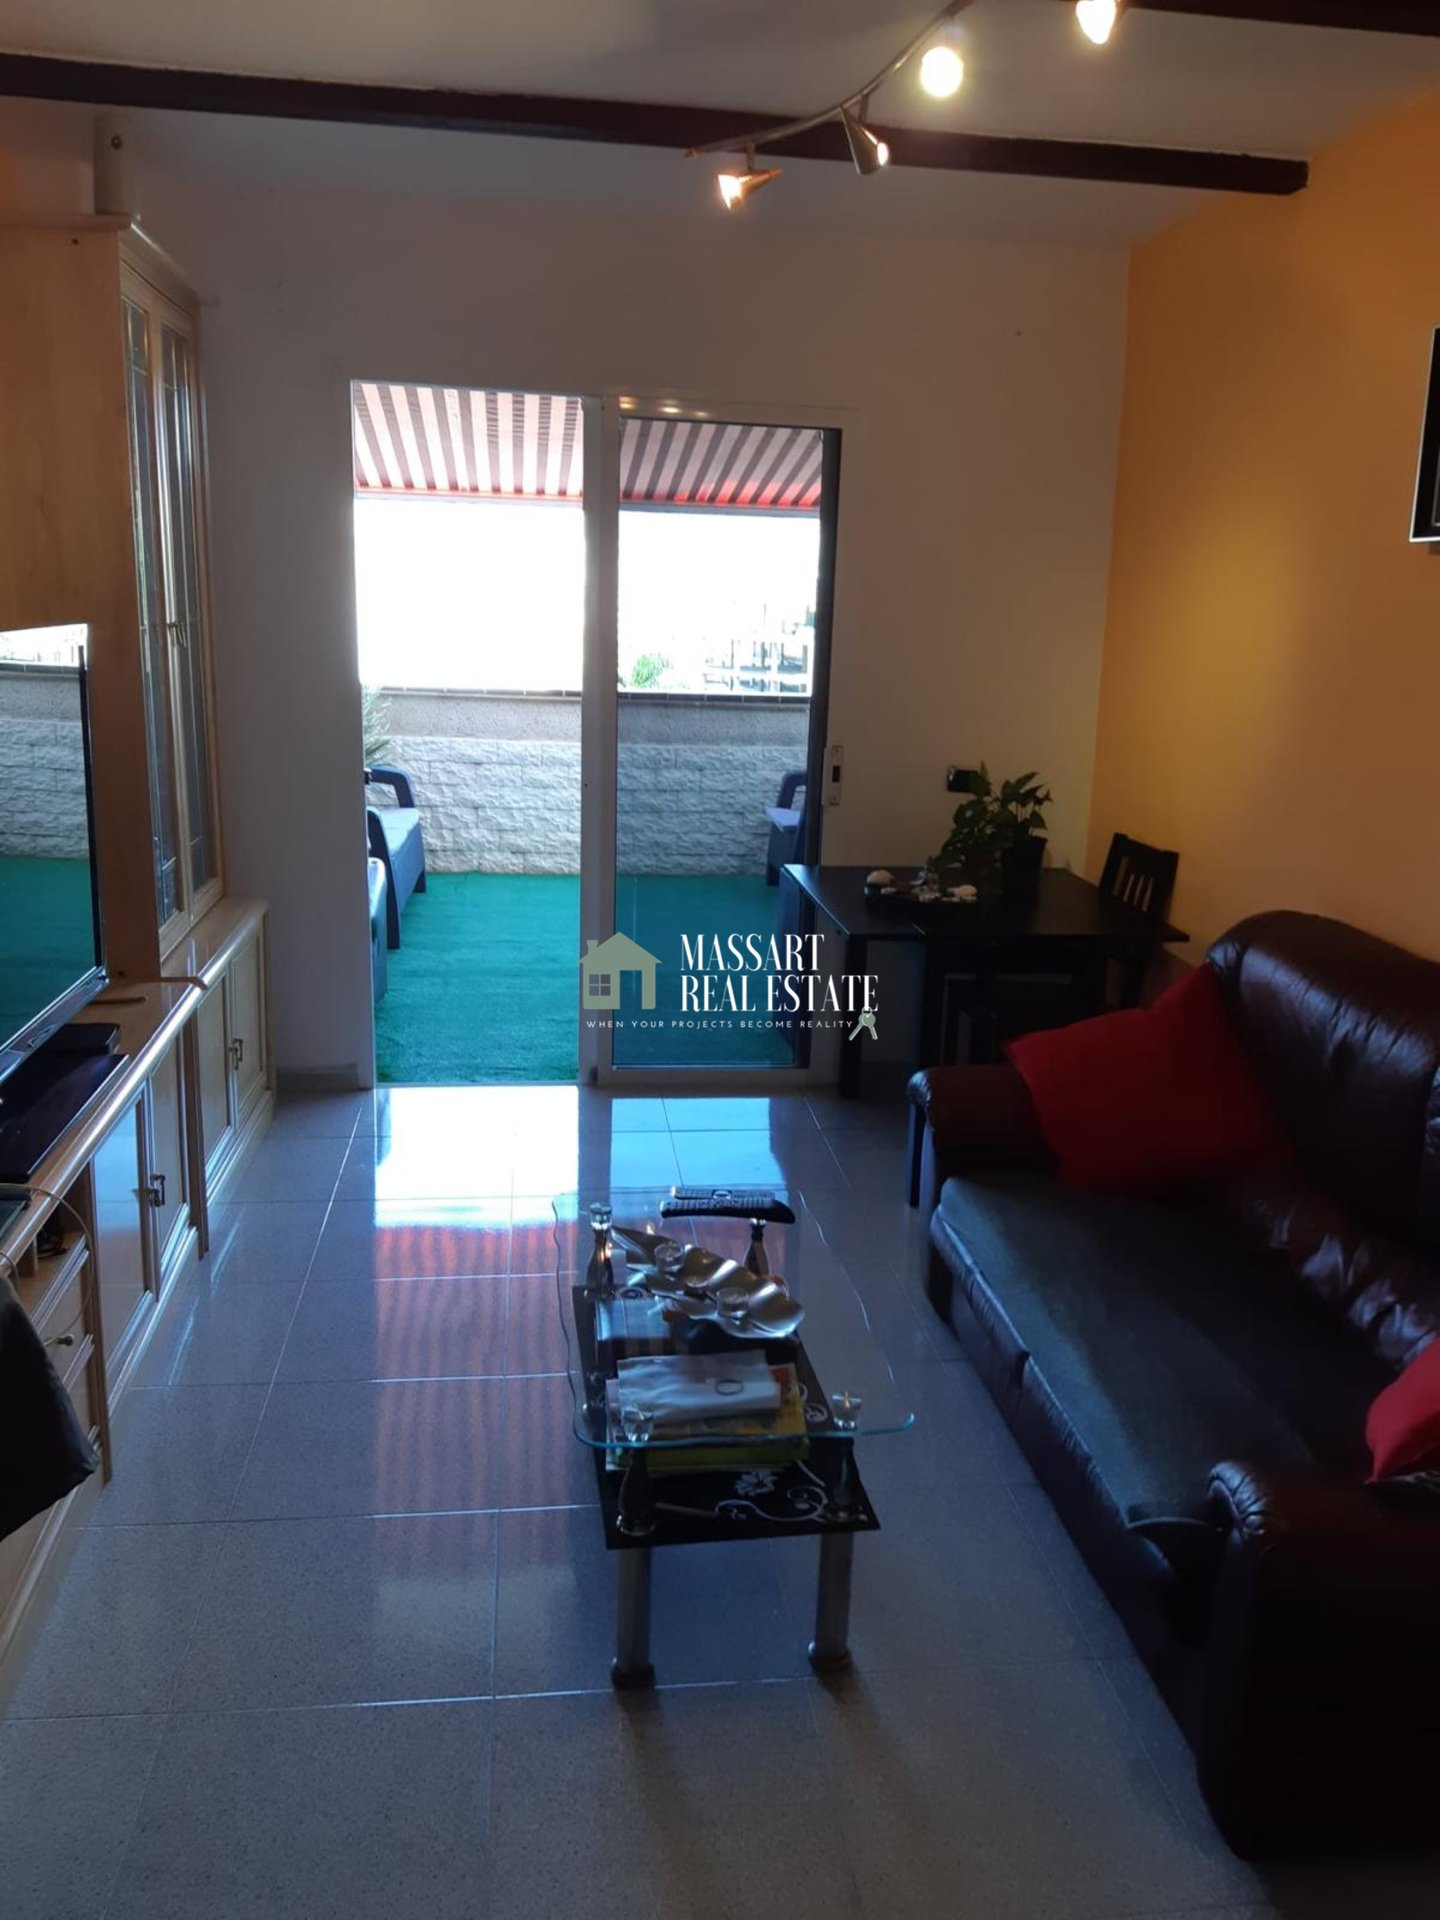 Furnished apartment of about 60 m2 in the strategic area of Los Cristianos characterized by offering incredible mountain views.